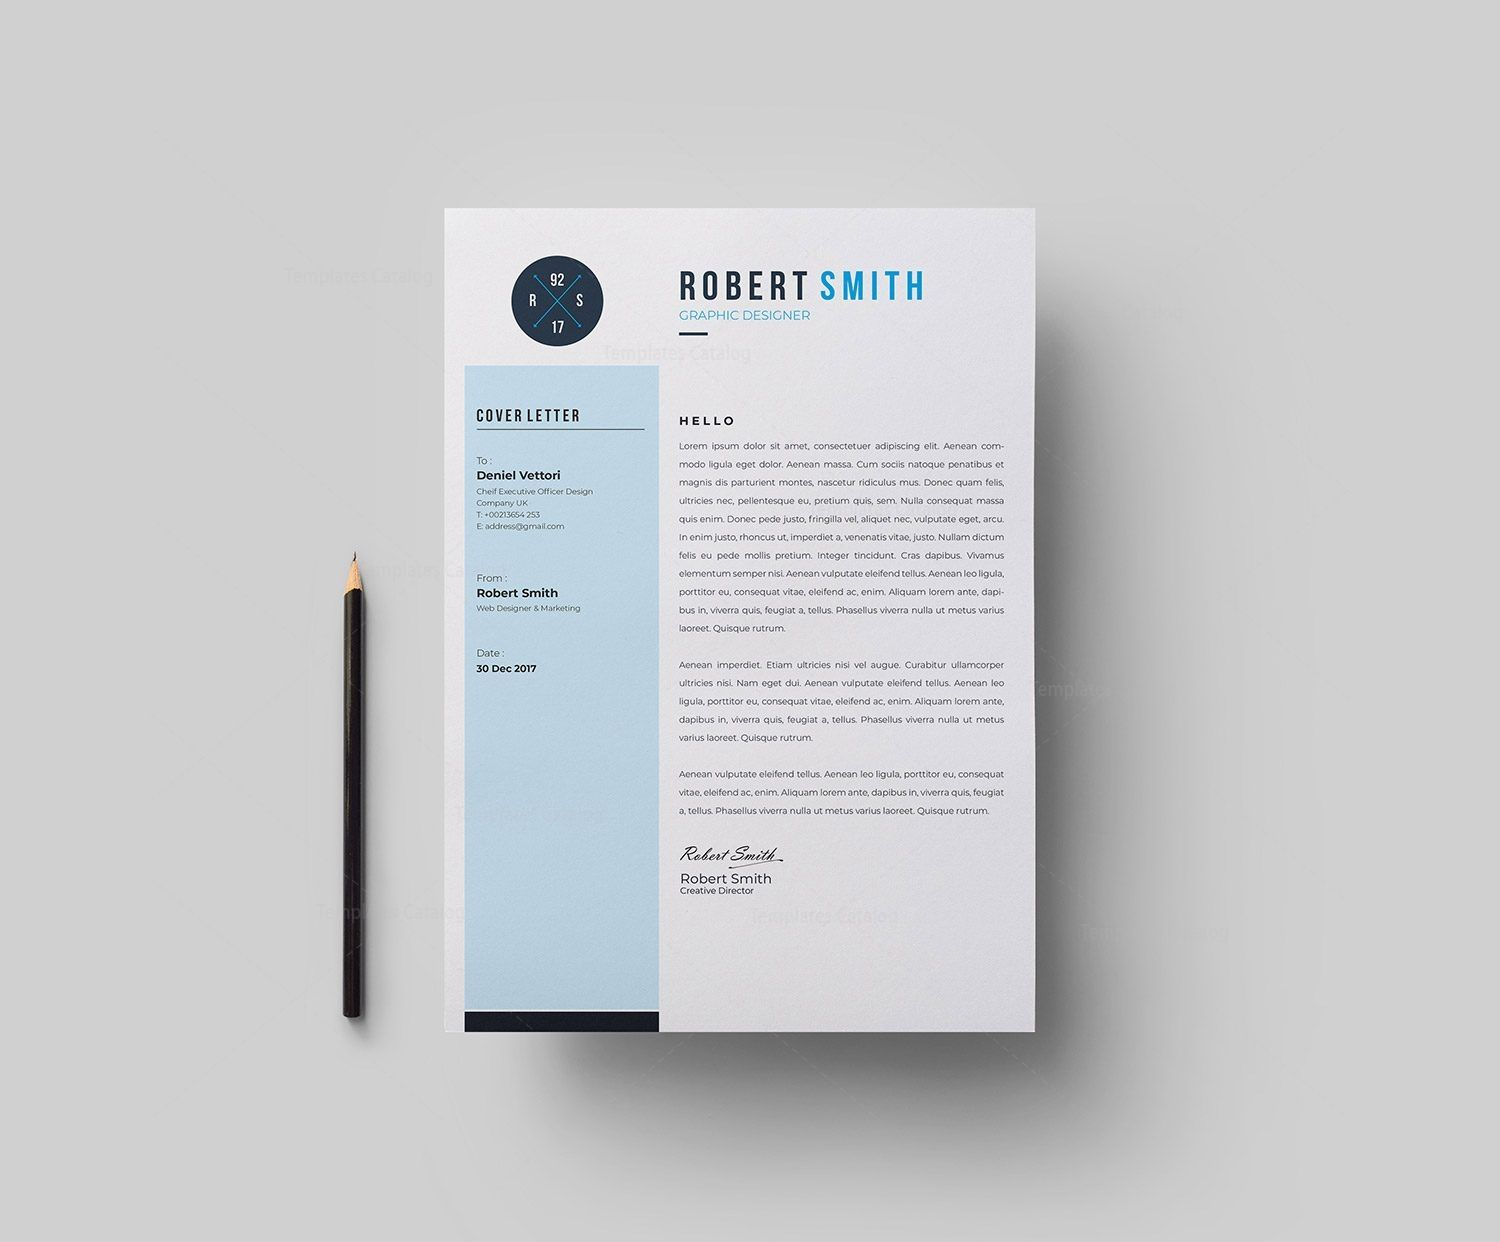 A4 Clean Resume Template 002977 - Clean resume template, Resume template, Resume design template, Clean resume, Resume, Resume templates - A4 Clean Resume Template  The perfect way to make the best impression  Strong typographic structure and very easy to use and customize  The resume template